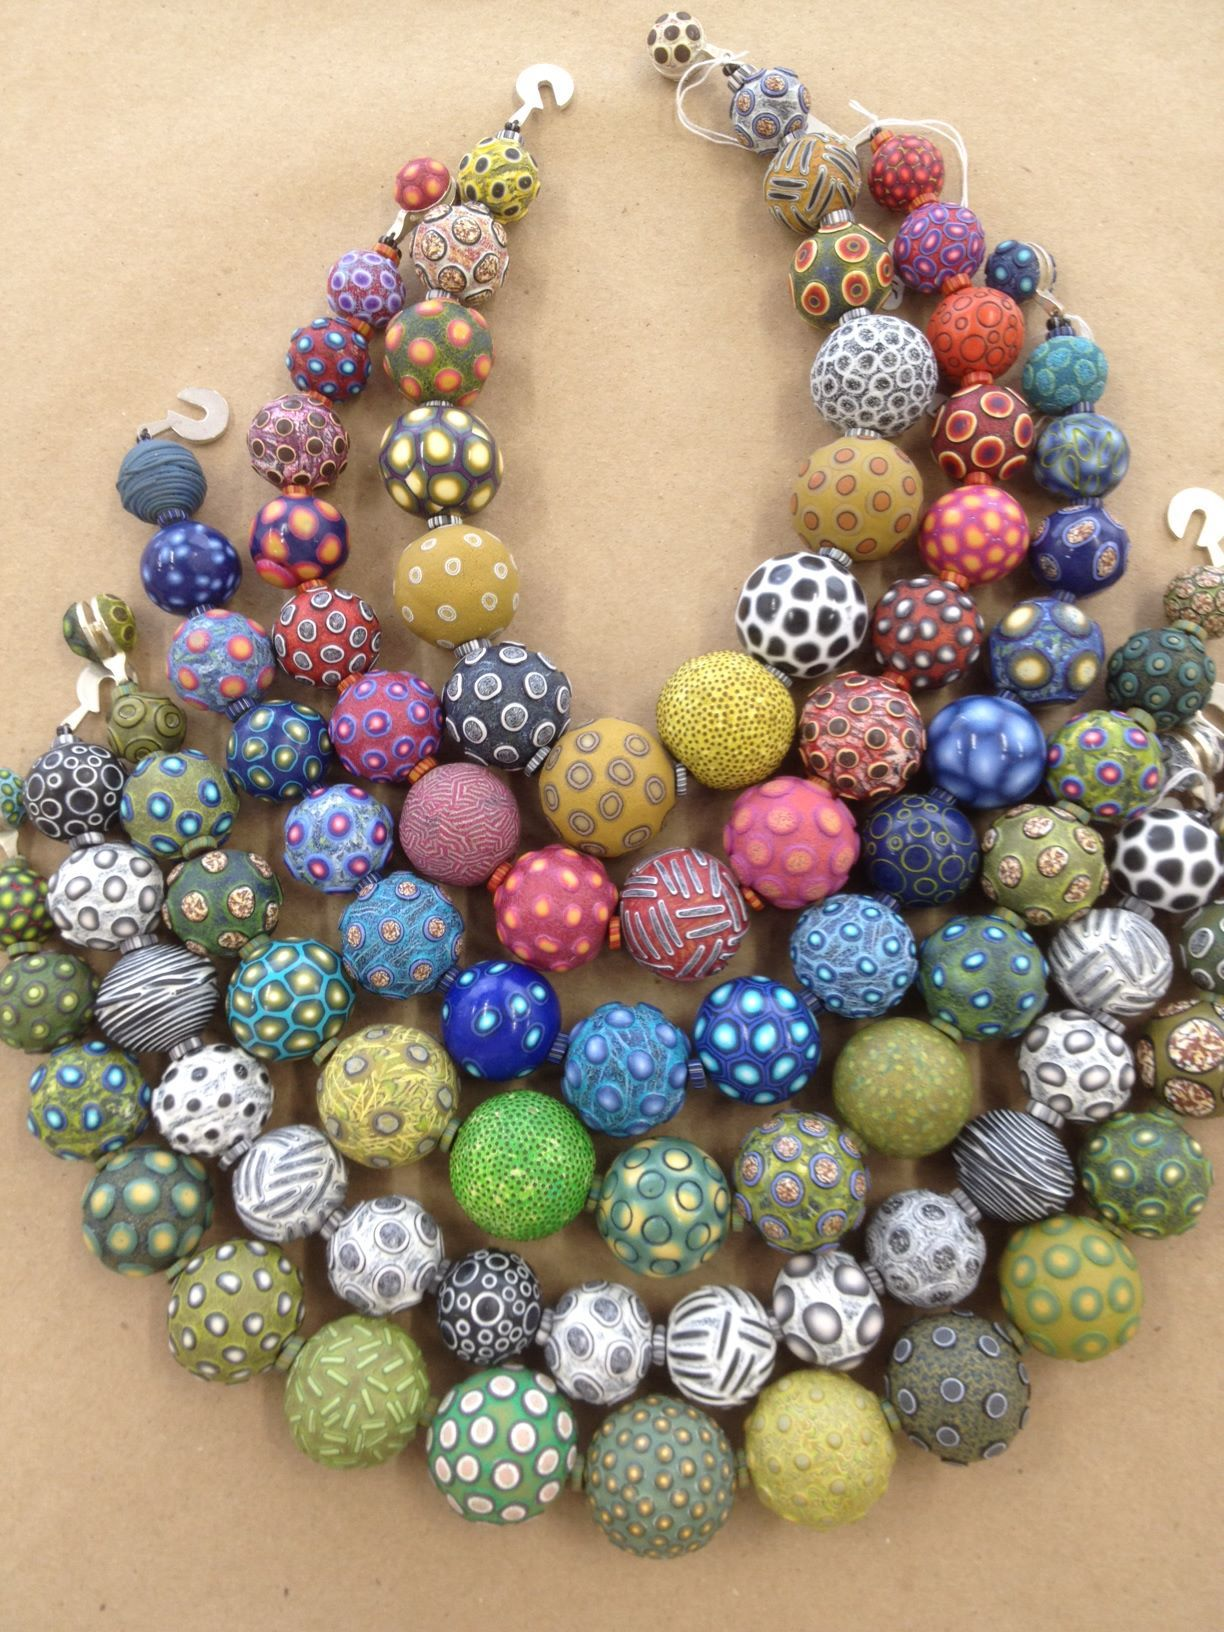 Ford & Forlano - Lots & lots of big beads